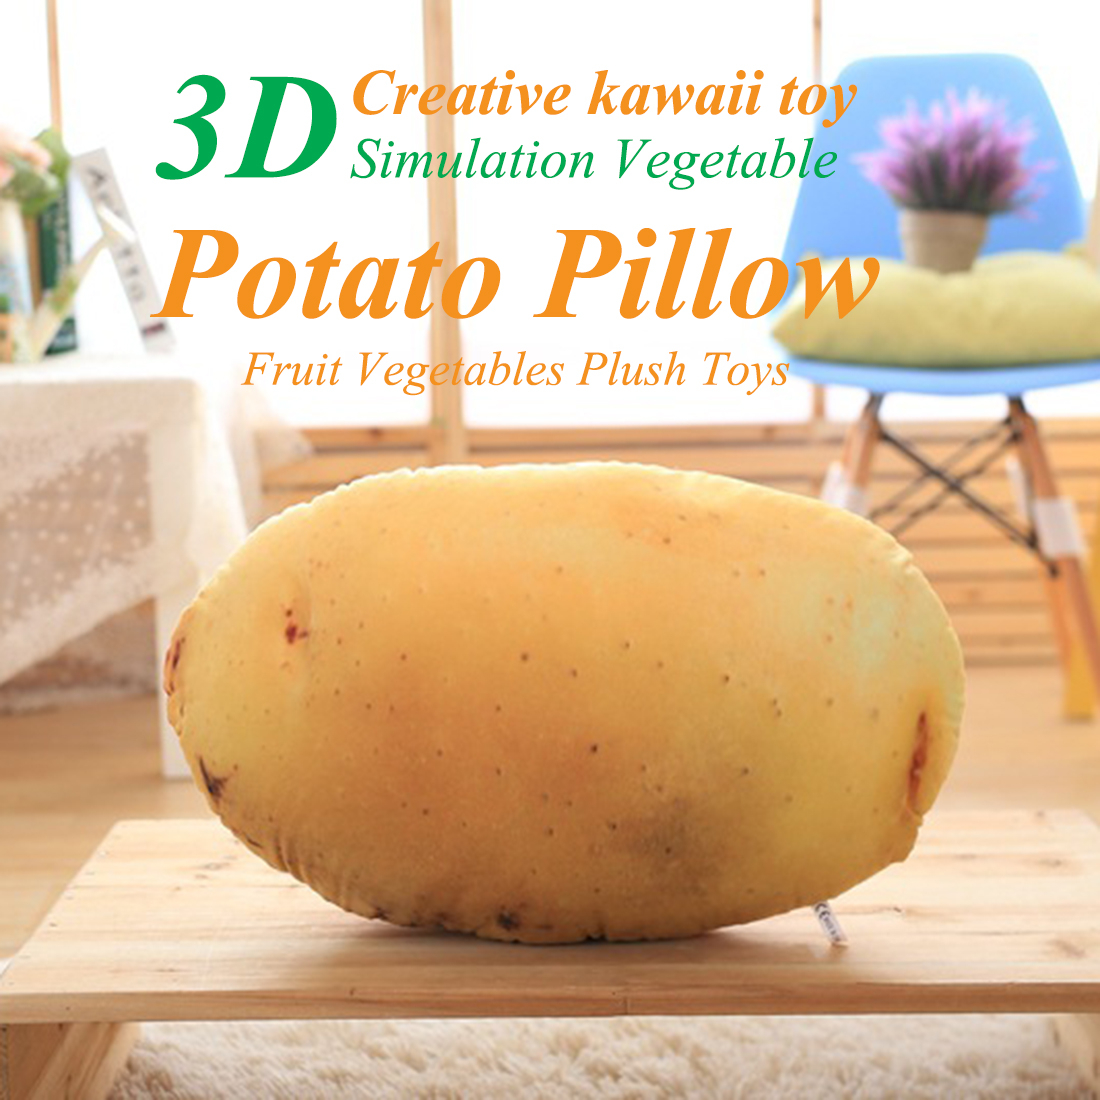 Power Source Latest Hot Product Ideas Kawaii Toys 3d Simulation Vegetable Broccoli Pillow Office Sofa Cushion Velvet Fruit Vegetables Plush We Have Won Praise From Customers